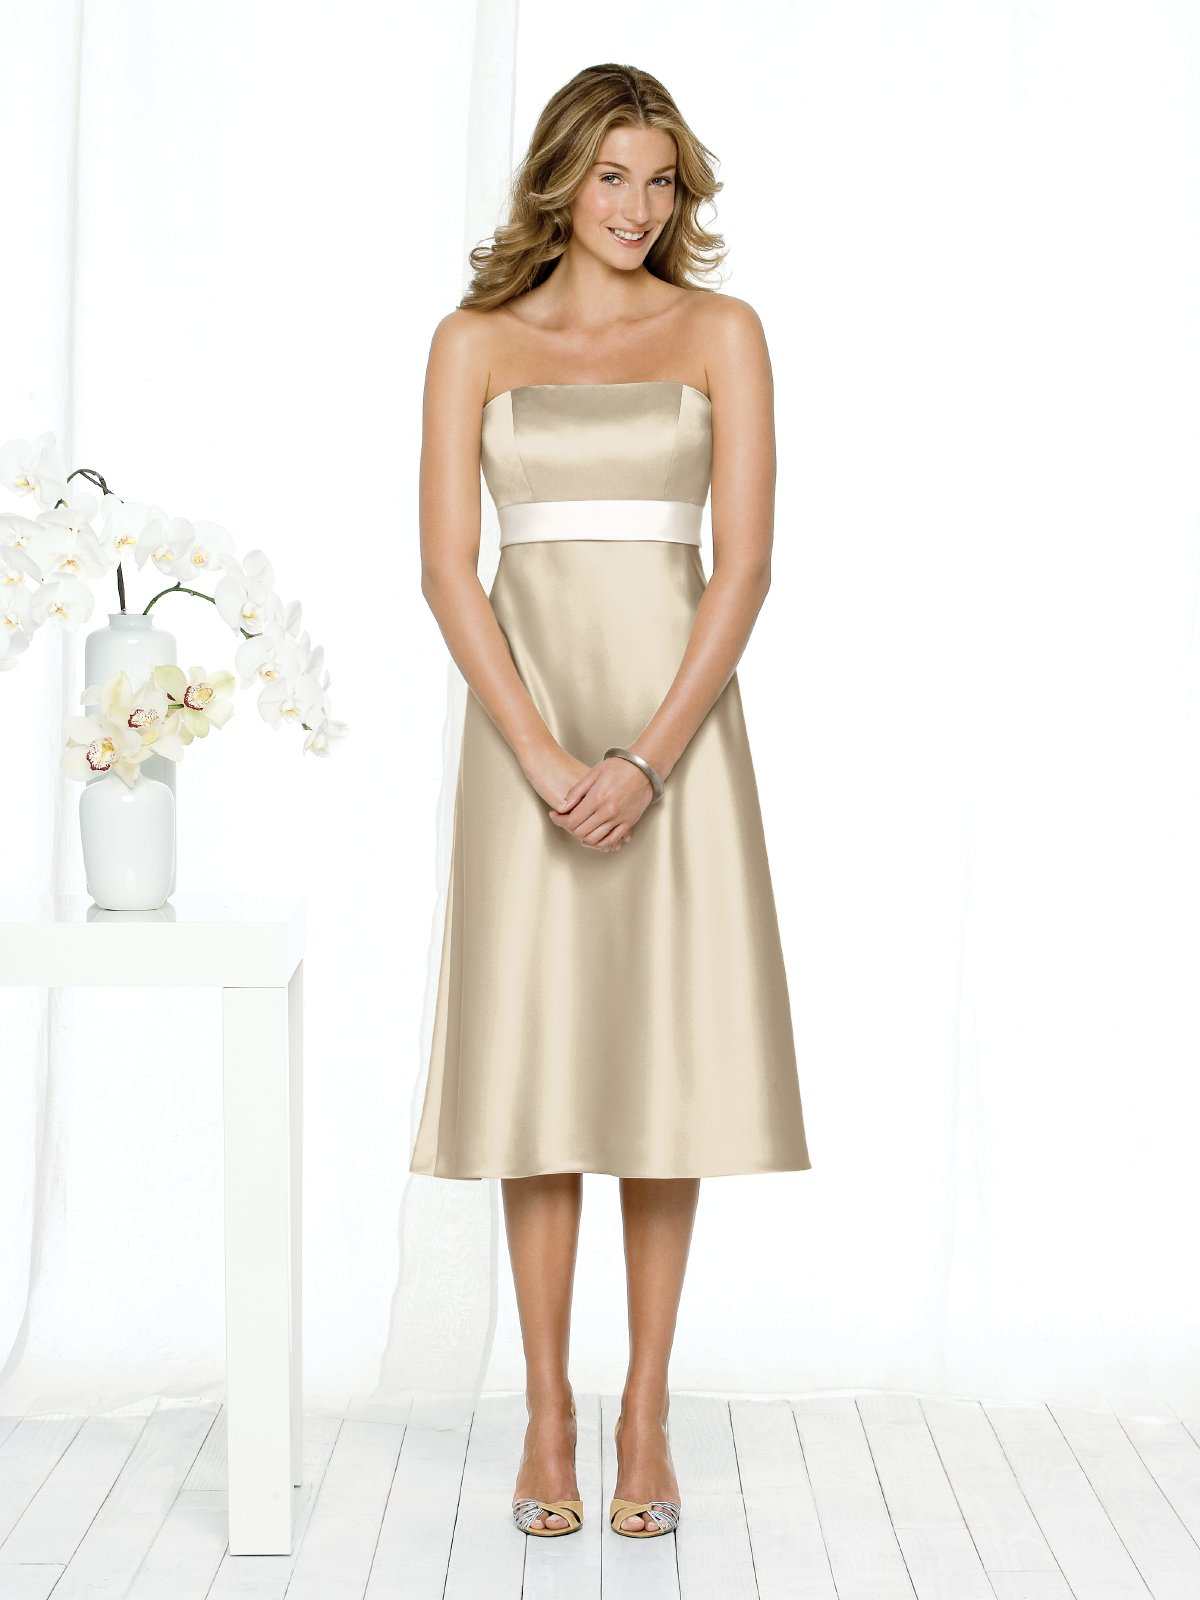 Champagne A Line Strapless Zipper Tea Length Satin Prom Dresses With White Sash